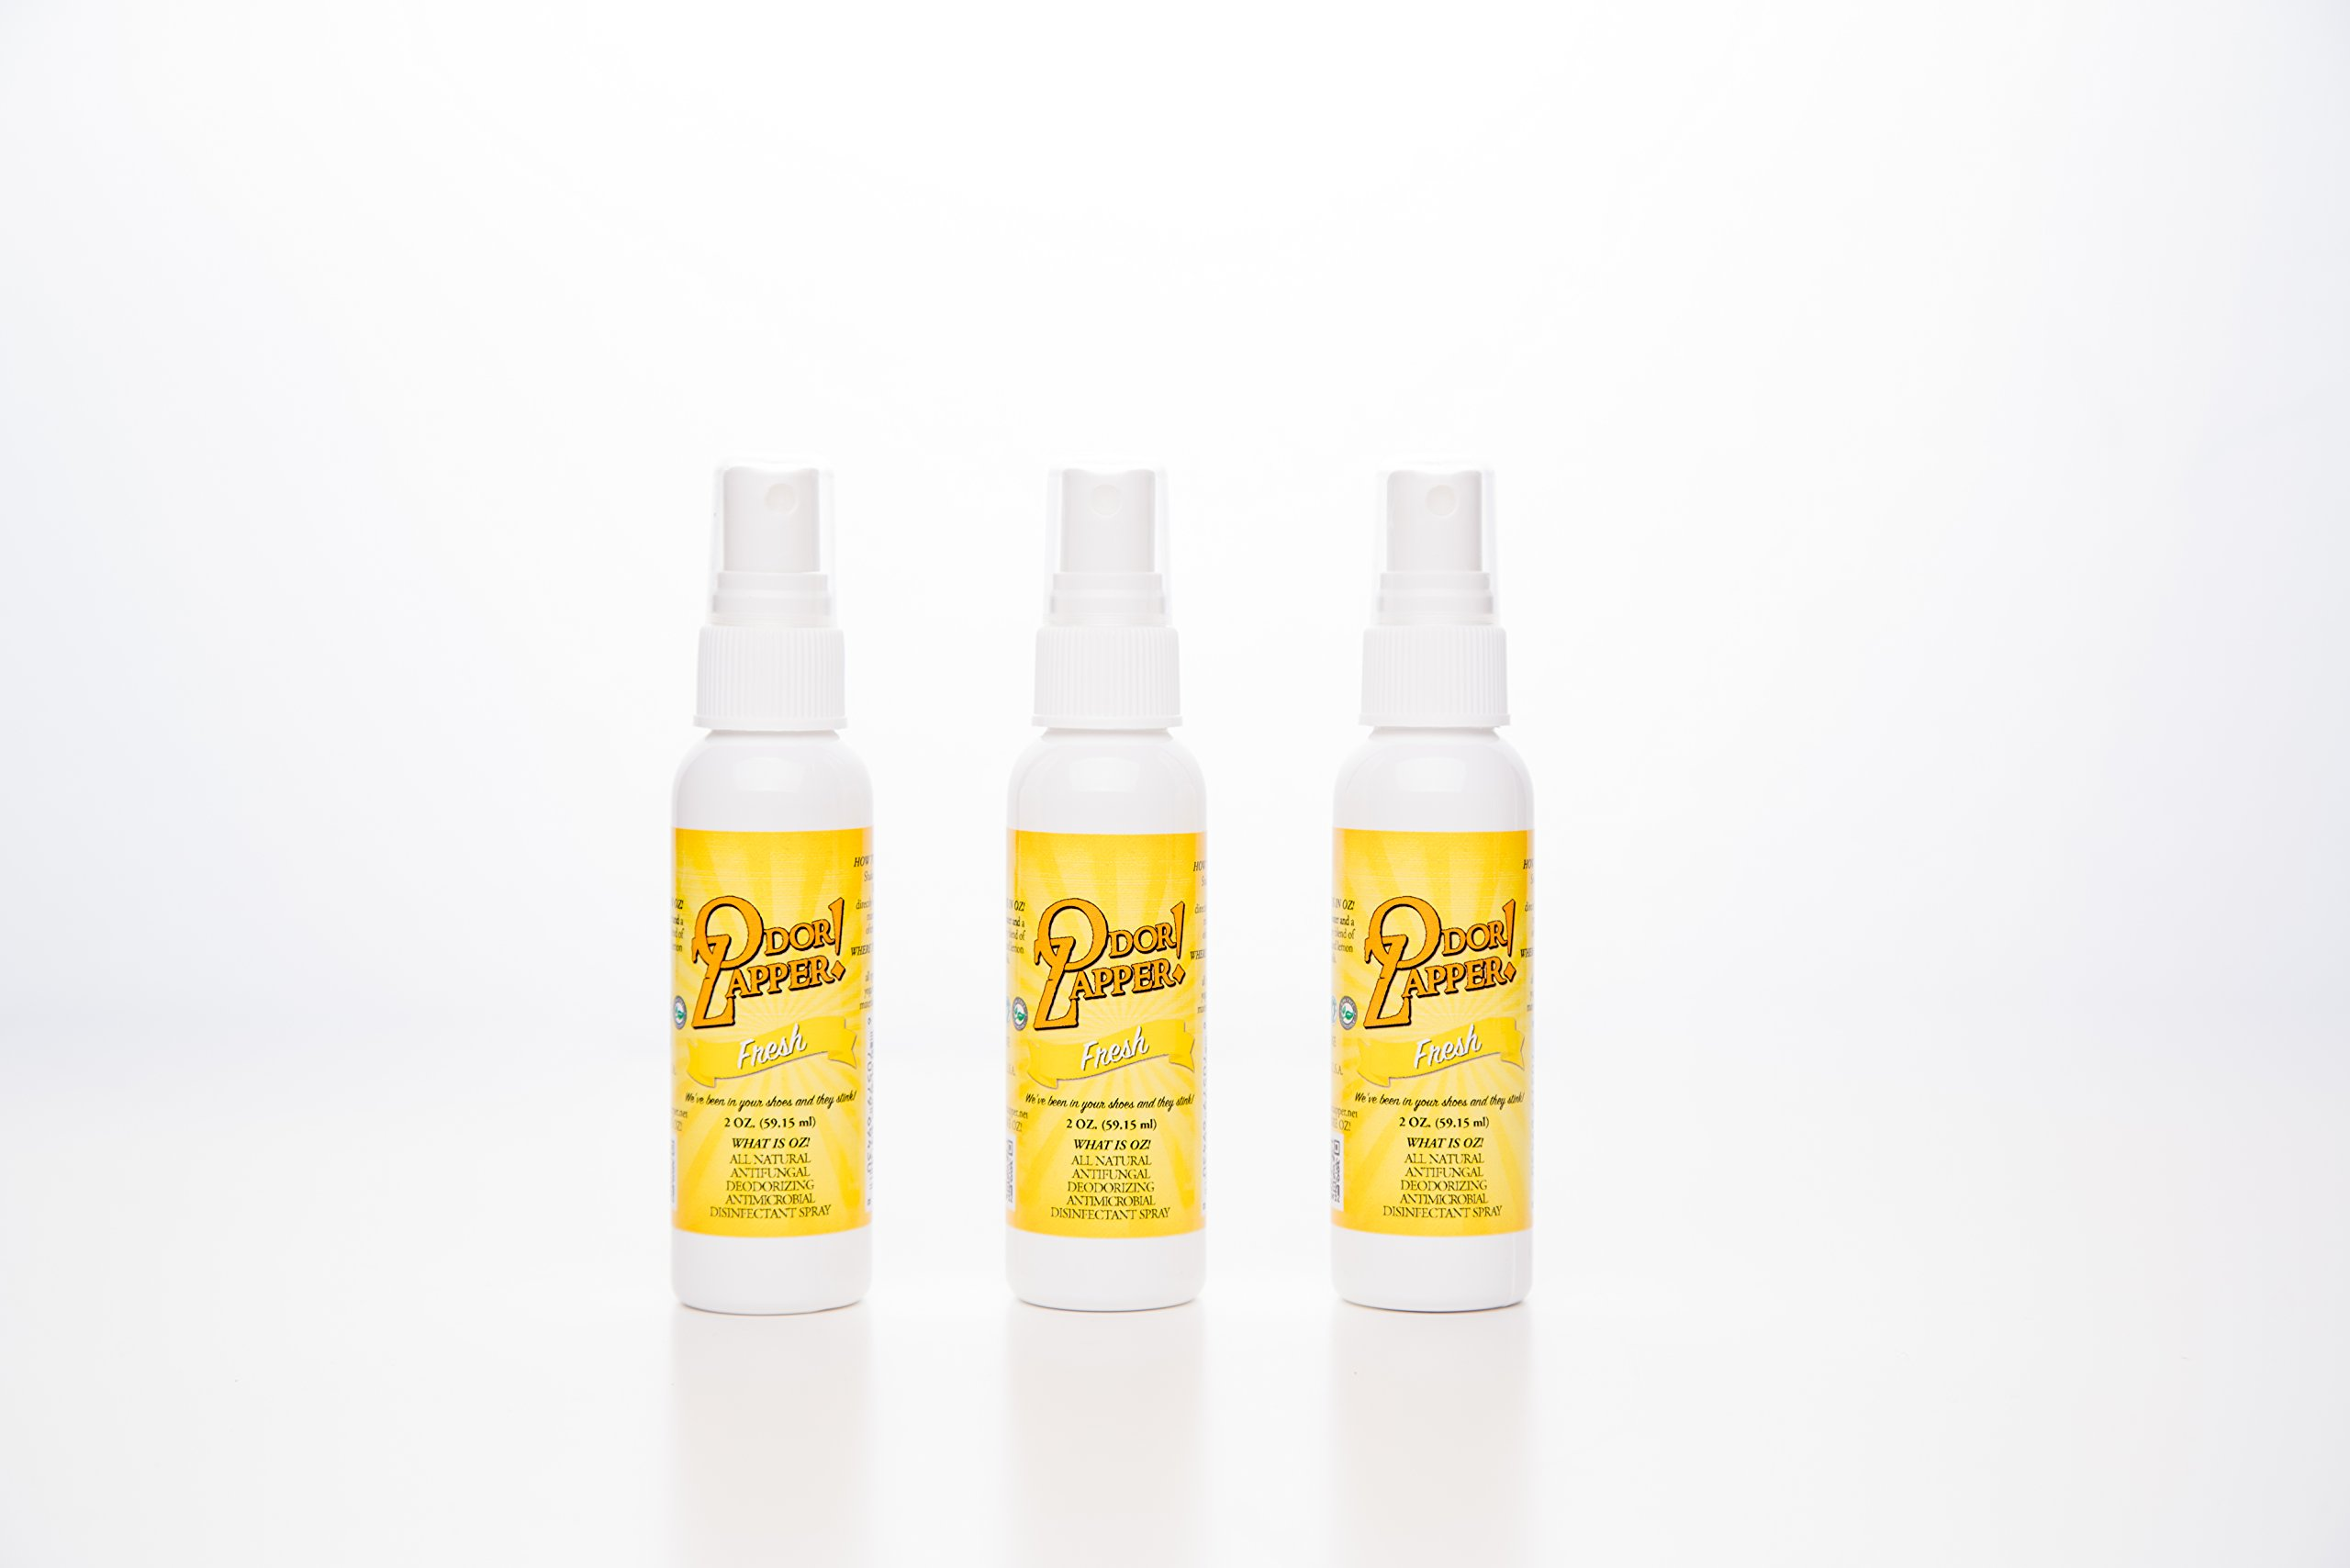 Odor Zapper Disinfectant Spray - Use in Shoes, Gym Bags, Yoga Mats, and More! - ''Fresh'' - 3 Pack - 2 Oz Bottles by Odor Zapper - ''OZ!''